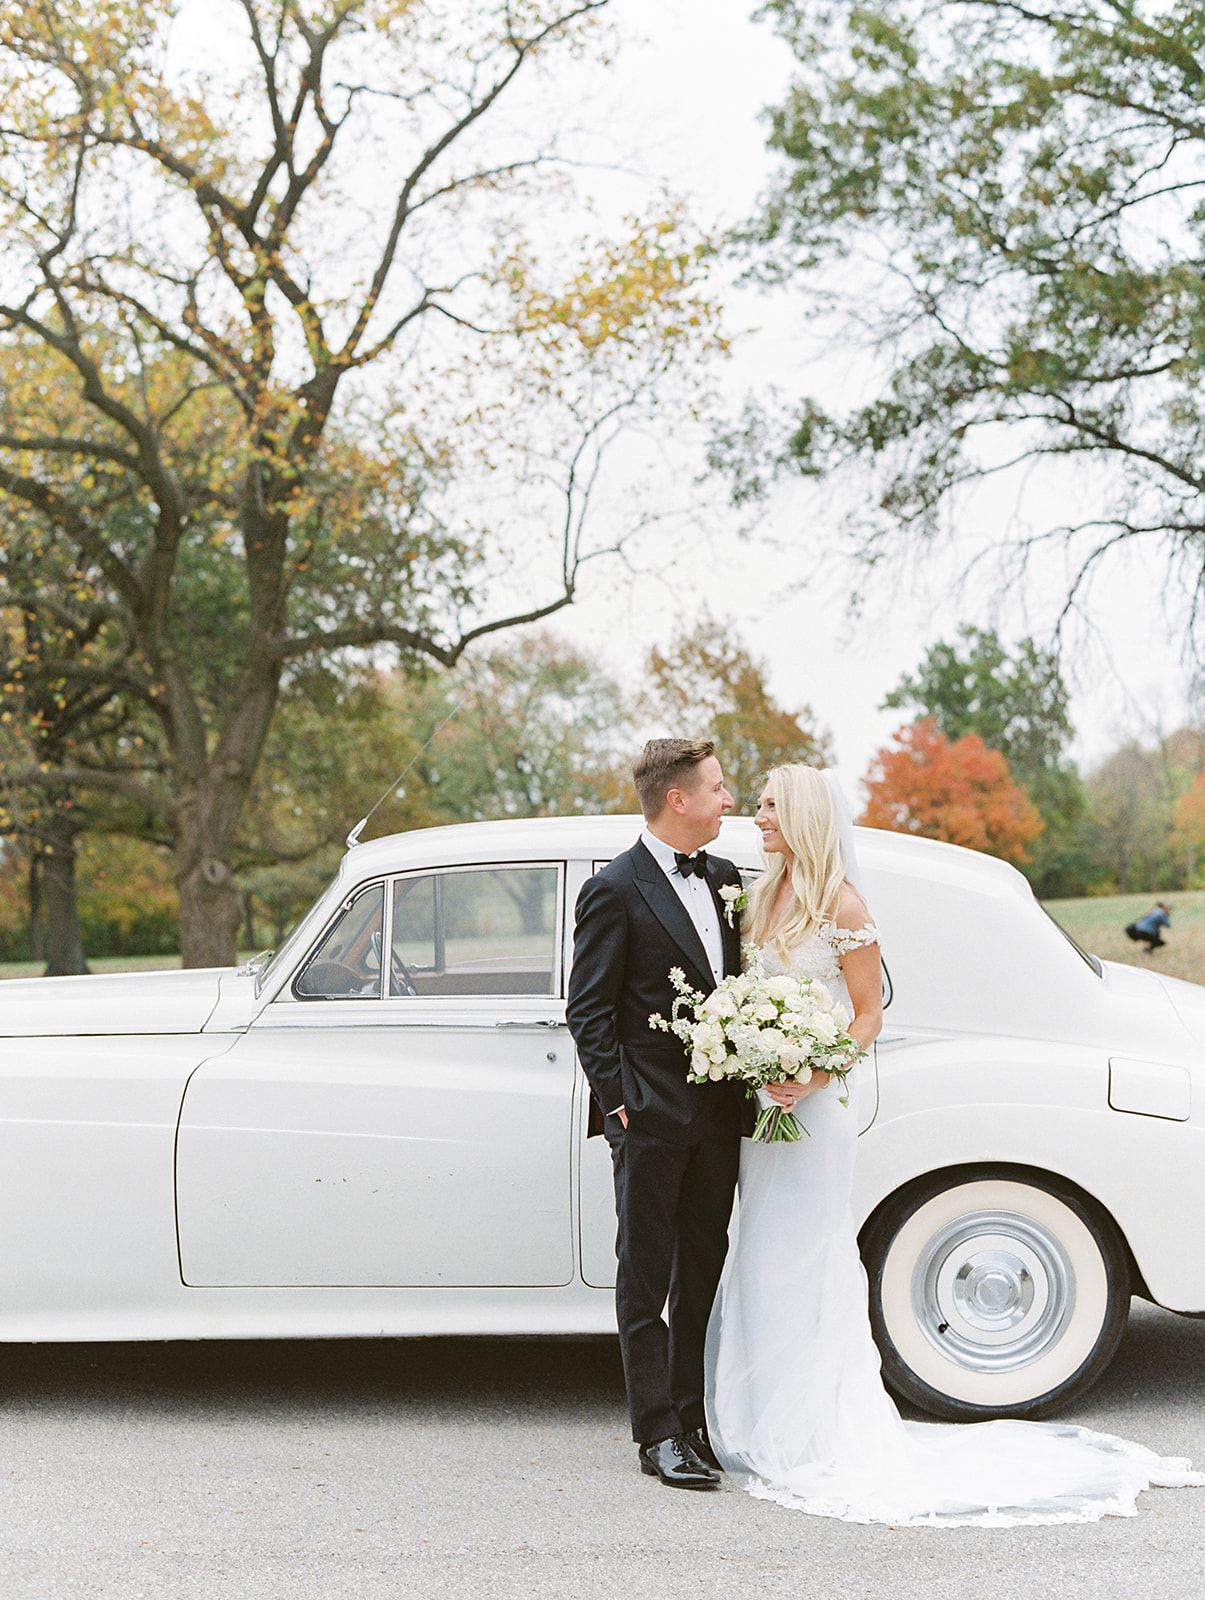 Bride and groom looking at each other in front of classic car